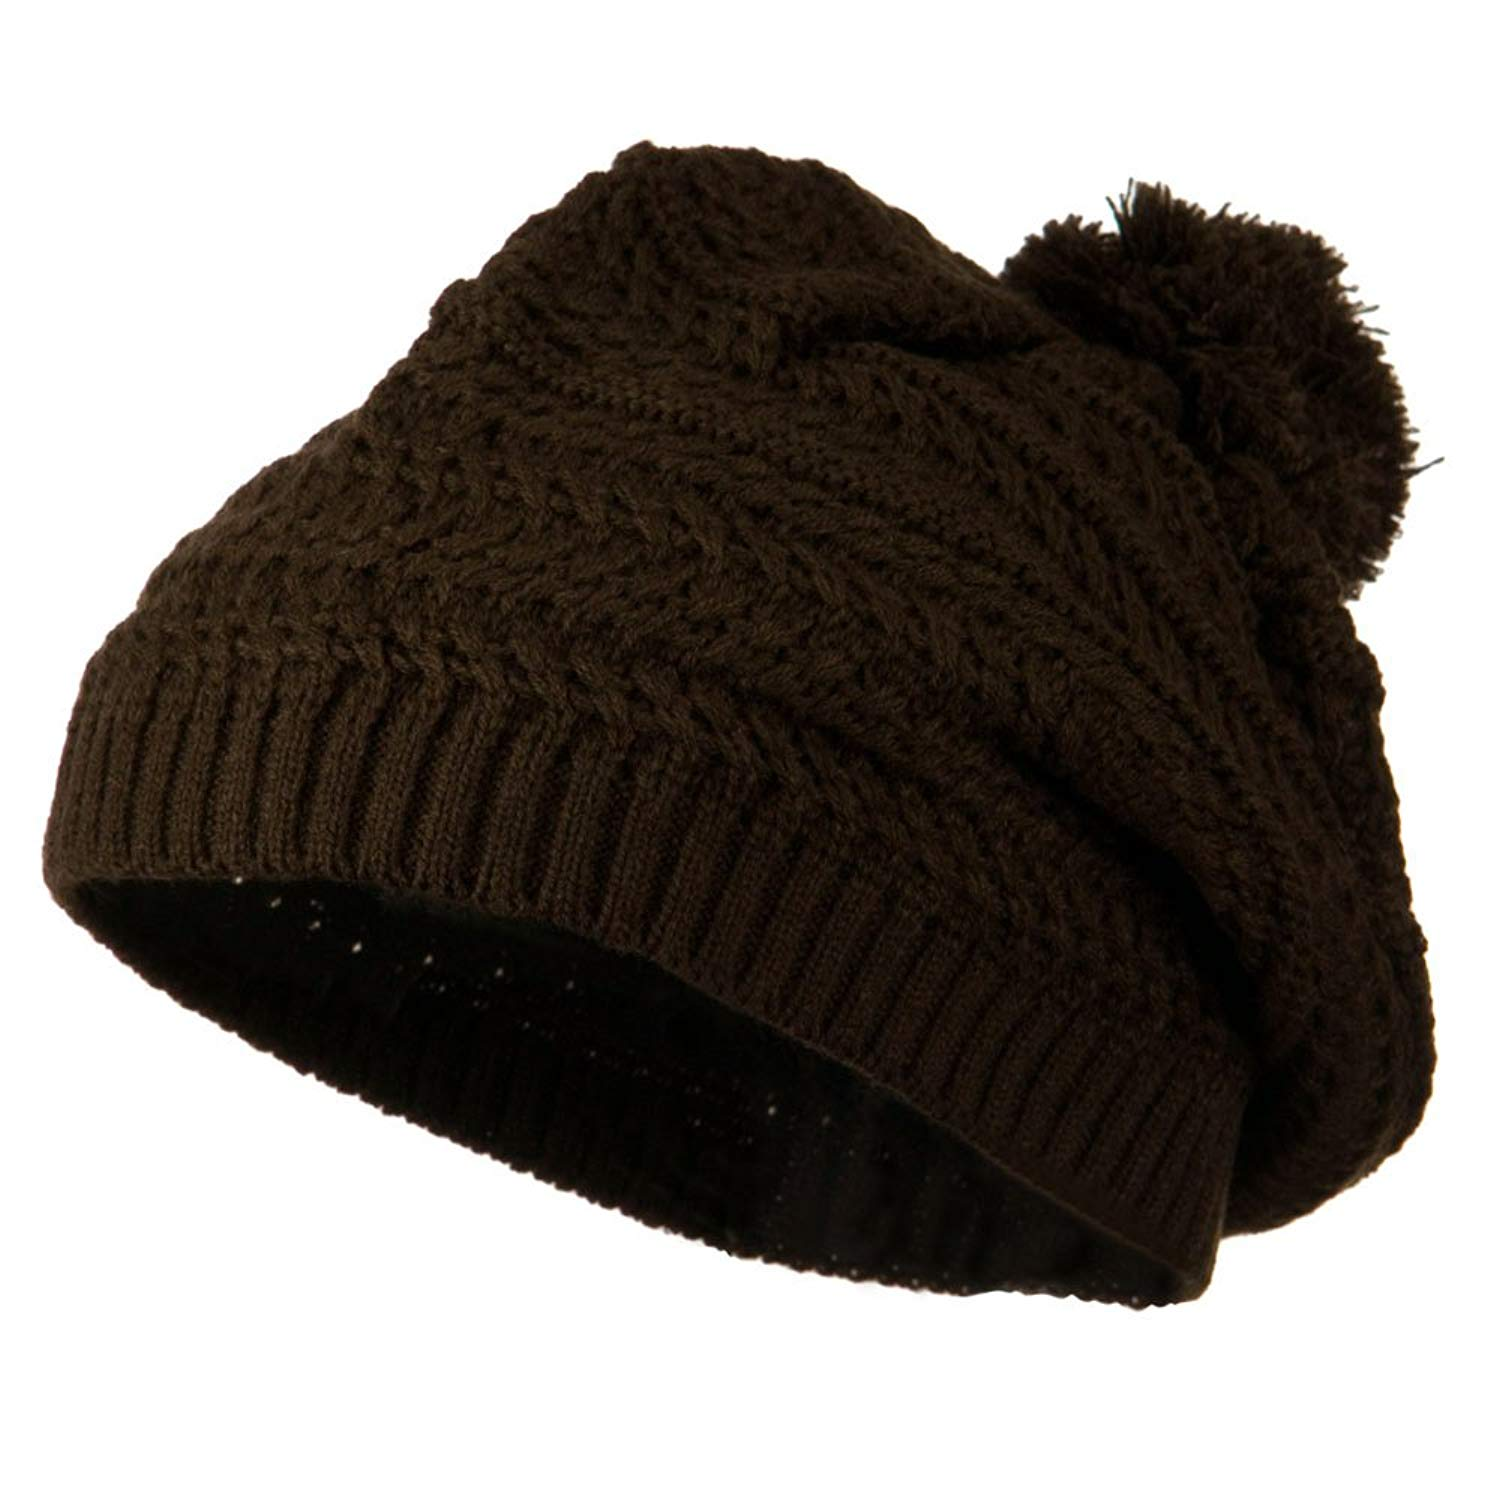 Slinky Knit Beret with Pom Pom - Brown W24S27F